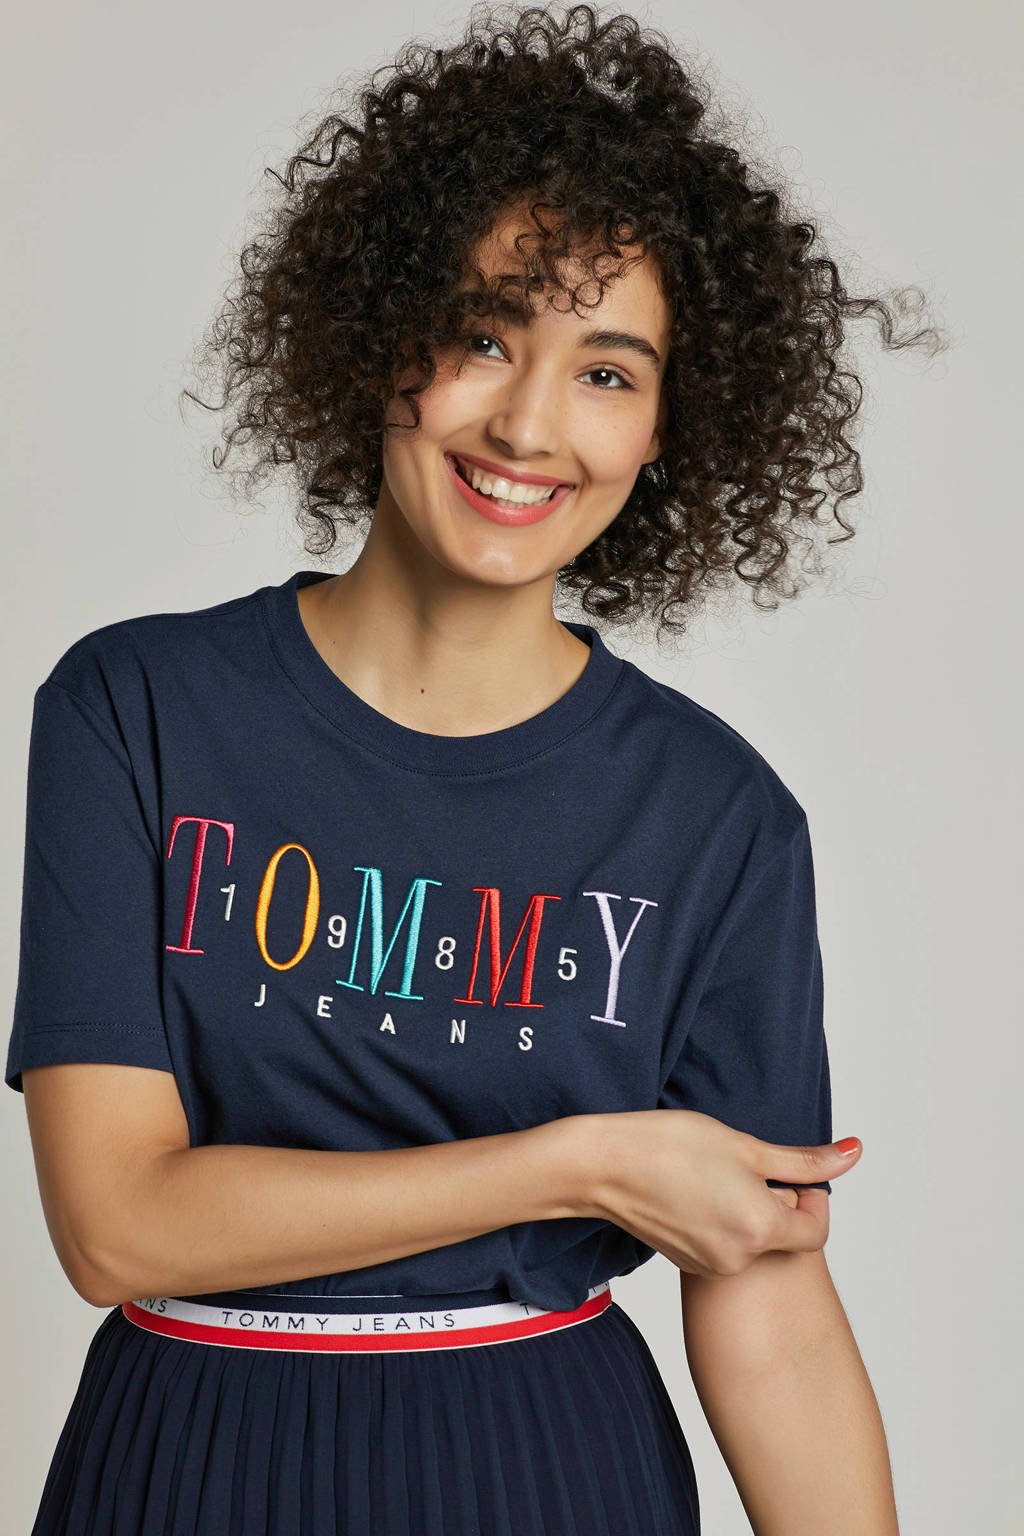 Met Tommy Jeanst shirt Donkerblauw Opdruk Oqf7q